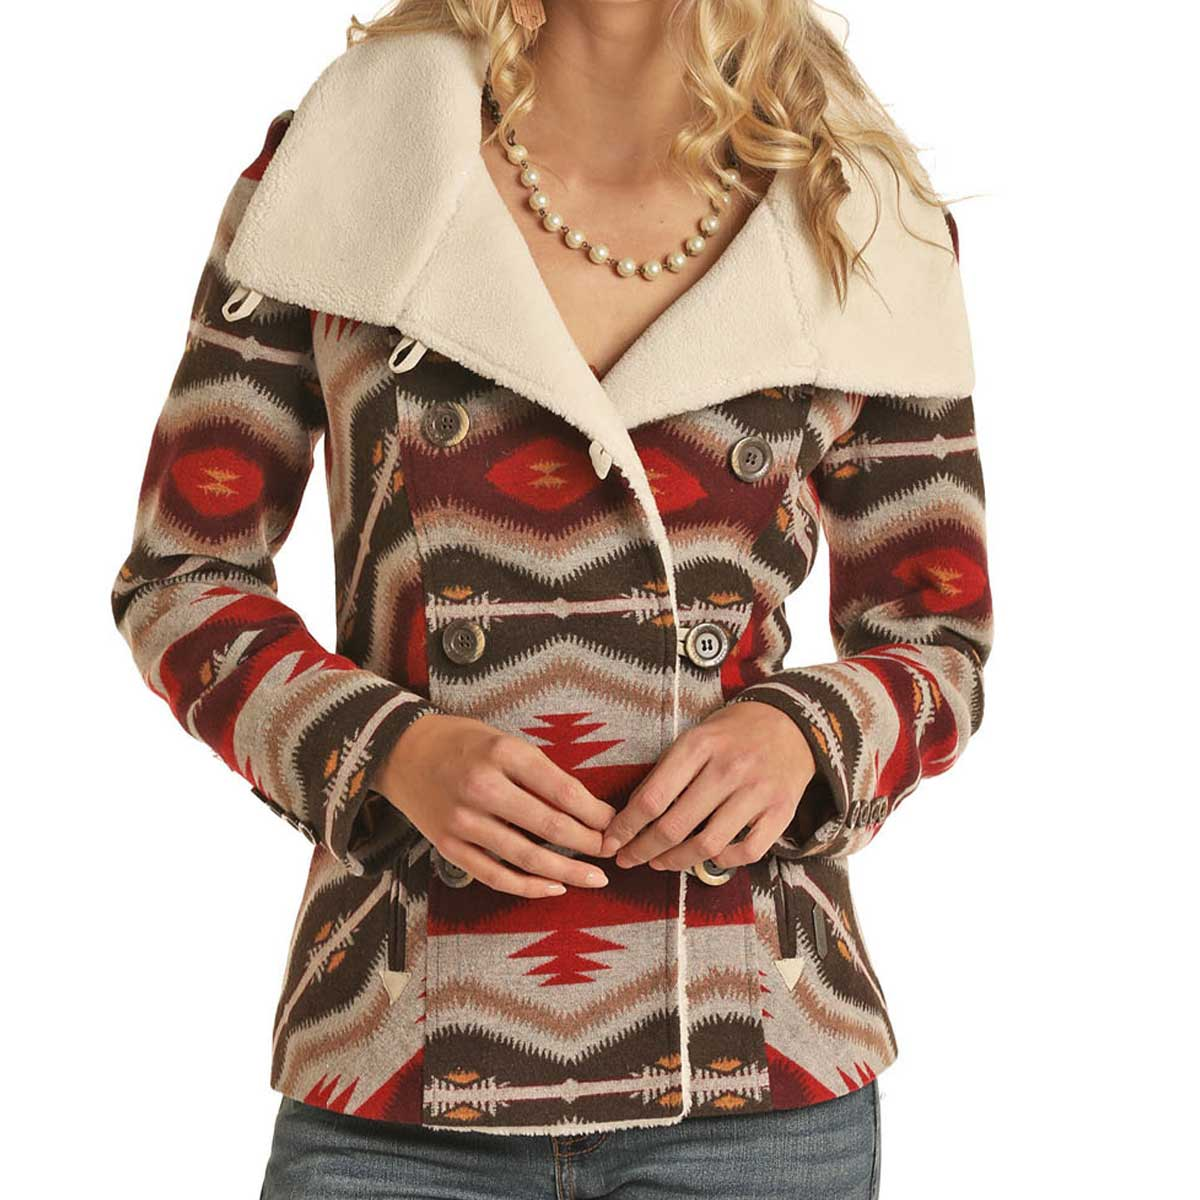 Panhandle  Women's Jacquard Jacket - Brown & Red